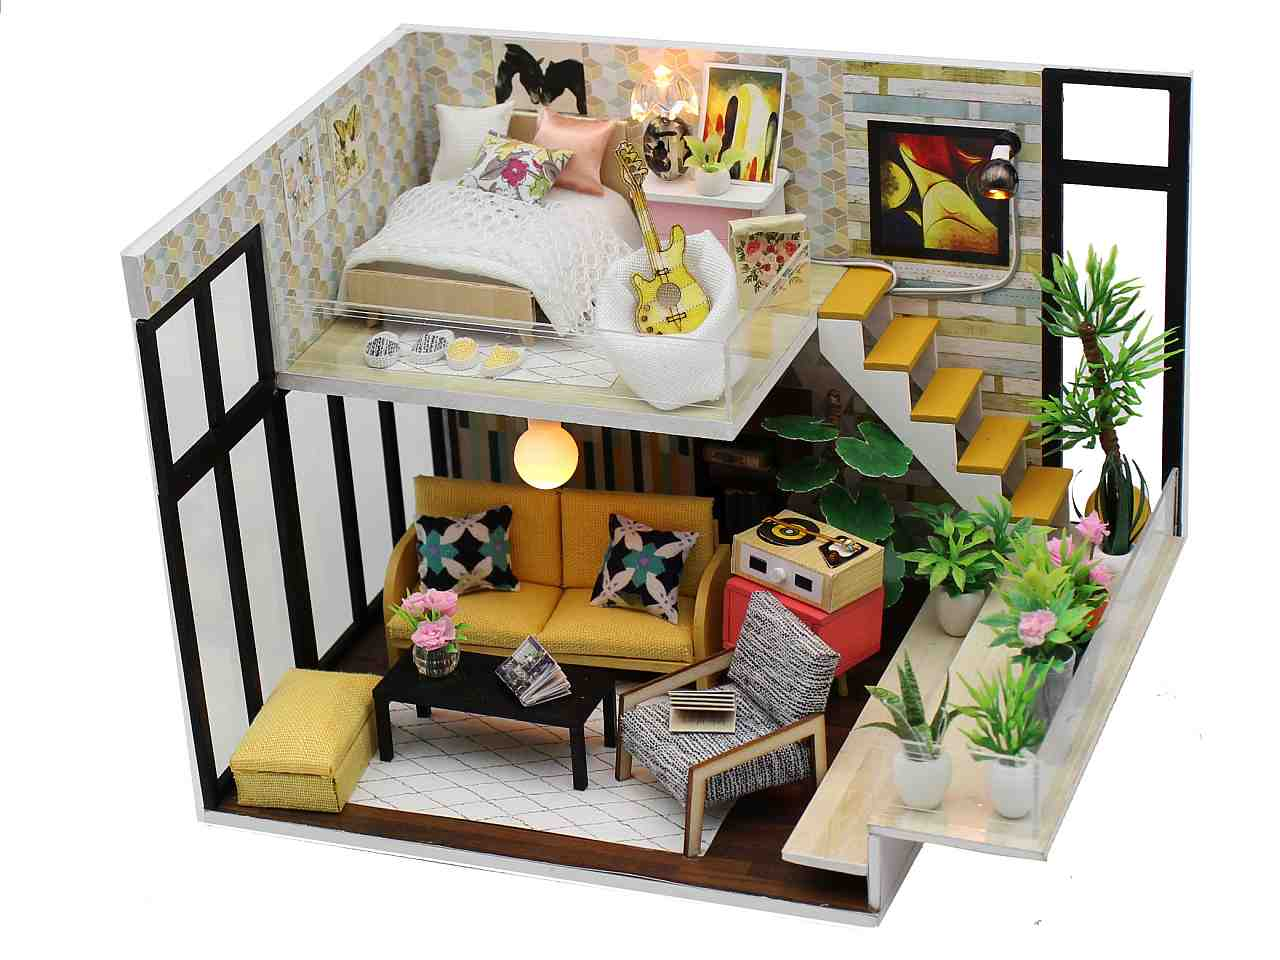 DIY M031 'Cynthia's Holiday' Wooden Miniature Dollhouse w/ LED Lights and Dust Proof Cover Assemble Dollhouse